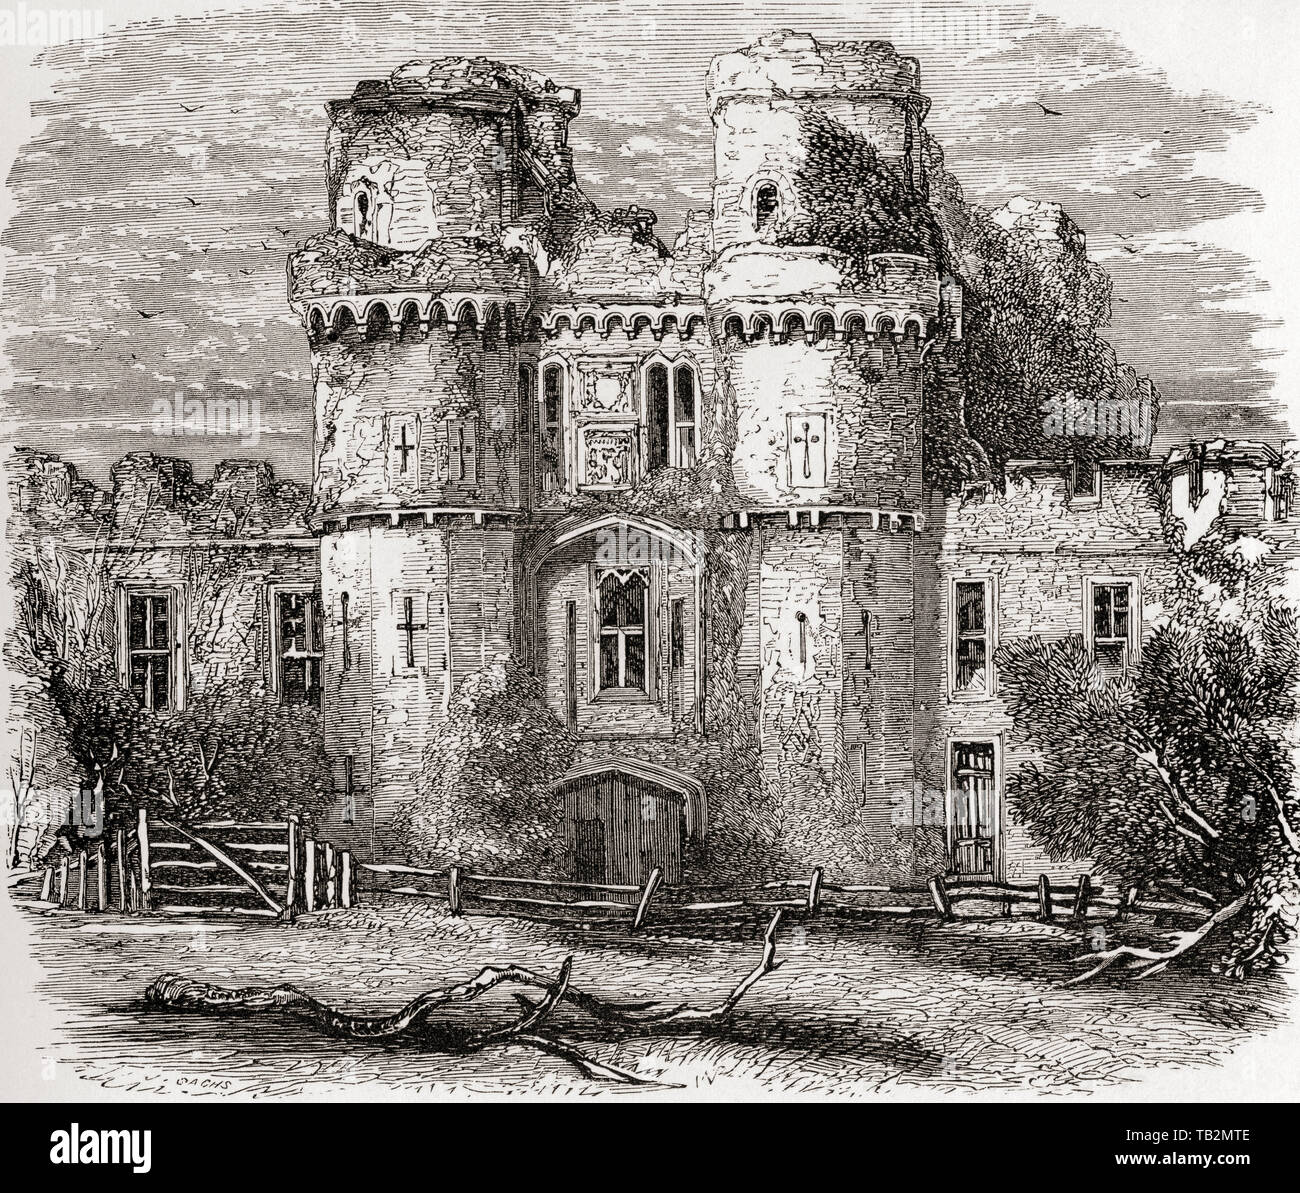 Herstmonceux Castle, near Herstmonceux, East Sussex, England, seen here in the 19th century.  The castle was renowned for being one of the first buildings to use brocks in England.  From English Pictures, published 1890. - Stock Image